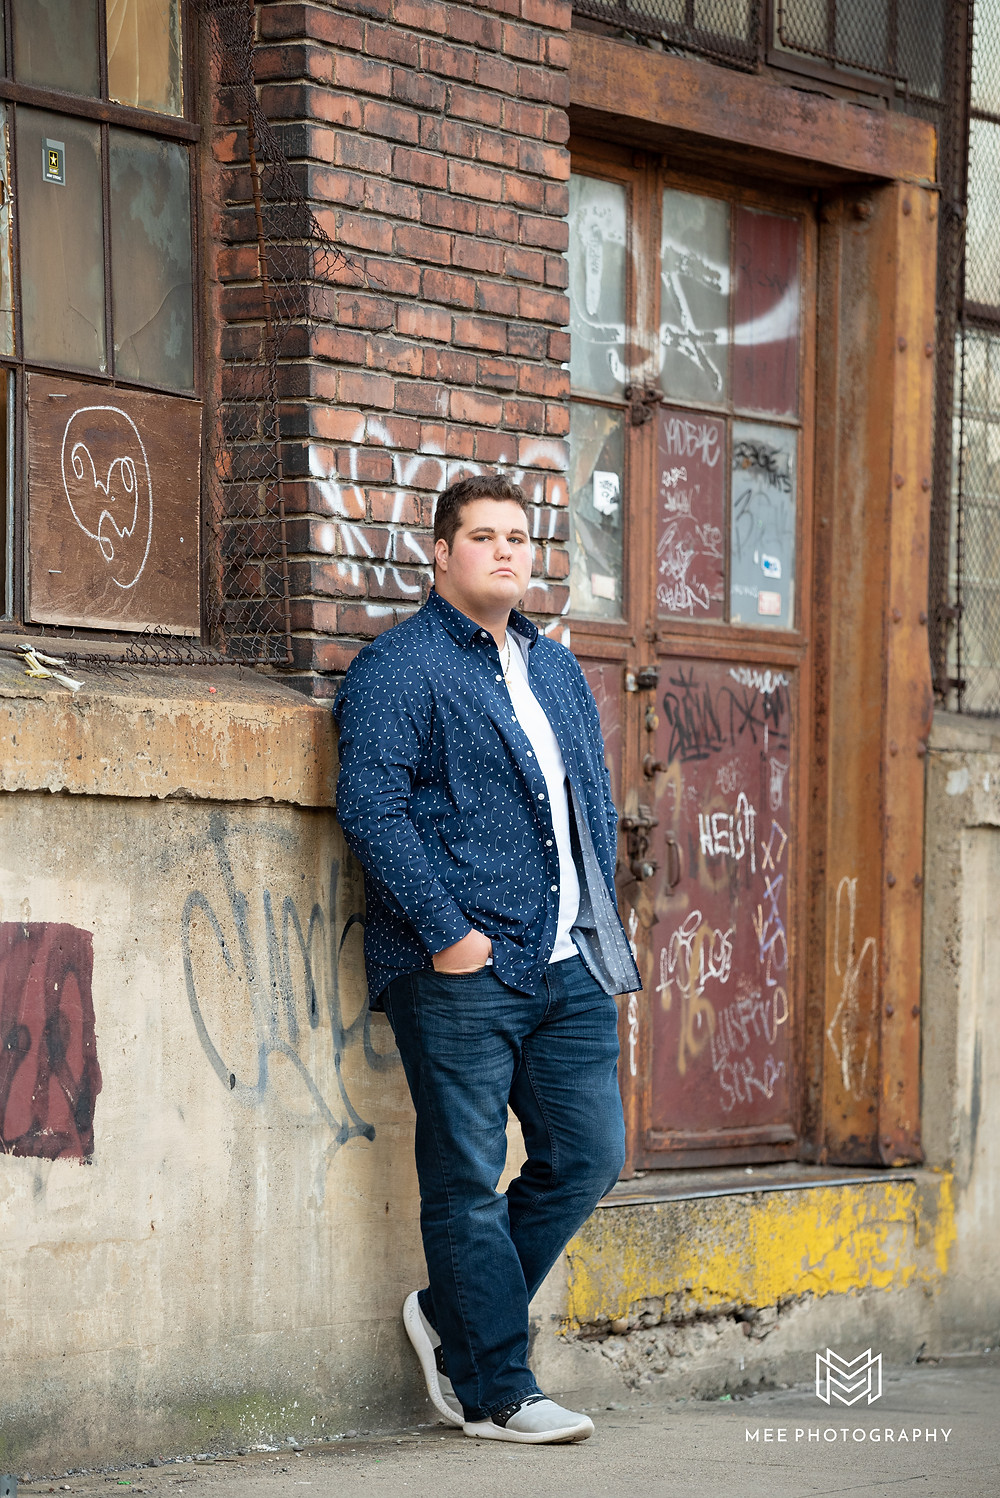 High school senior guy photography in the Strip District of Pittsburgh in front of old buildings and grafitti